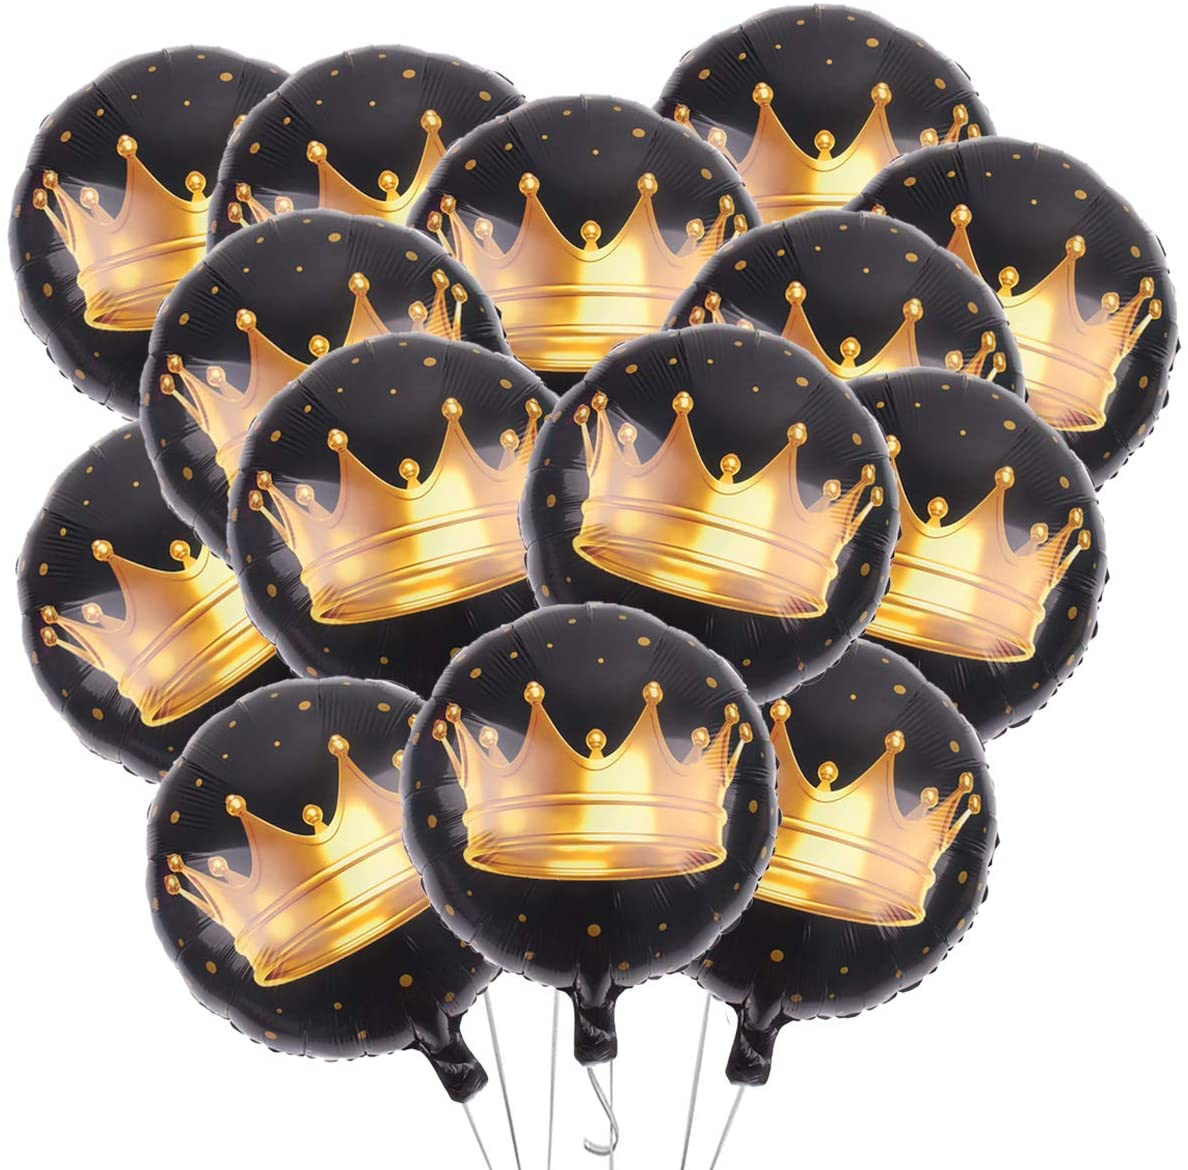 15Pcs 18 Inch Crown Balloons Happy Birthday Foil Balloons Round Black Mylar Balloons for Birthday Wedding Baby Shower Party Decoration